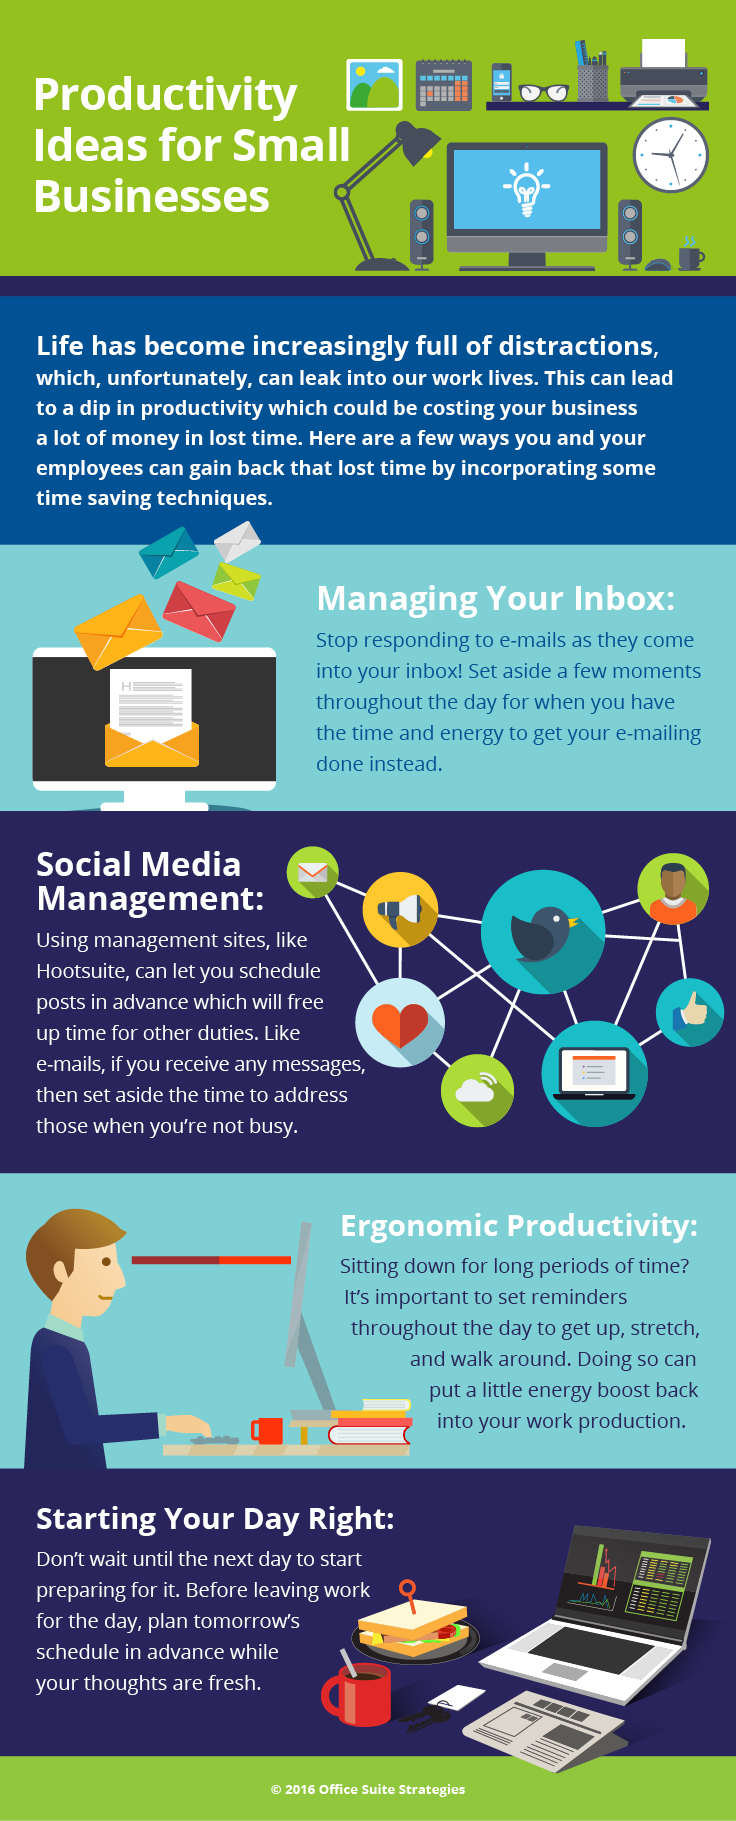 infographic with productivity ideas for small businesses